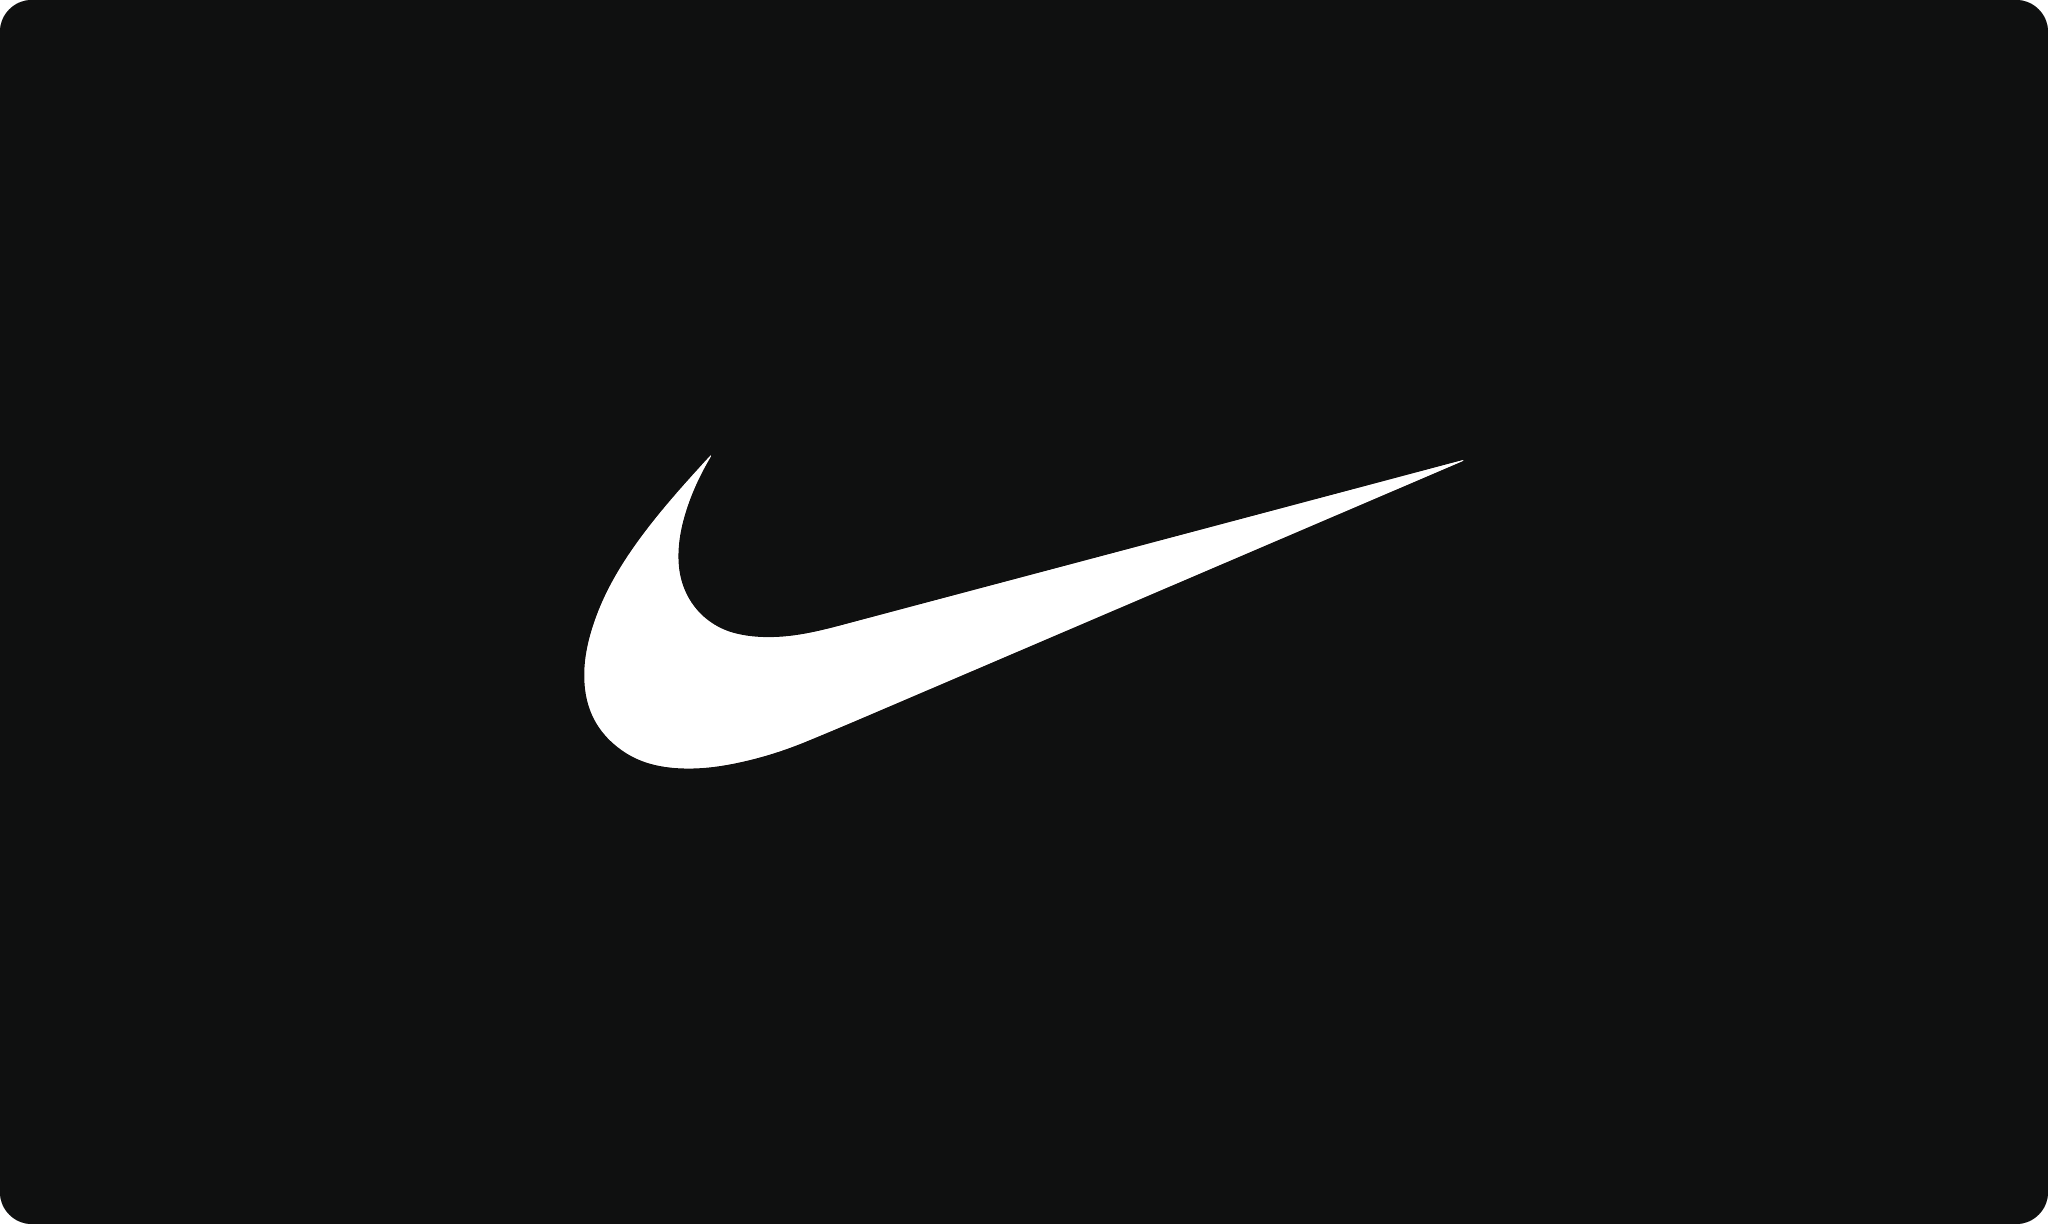 Nike logo in black and white